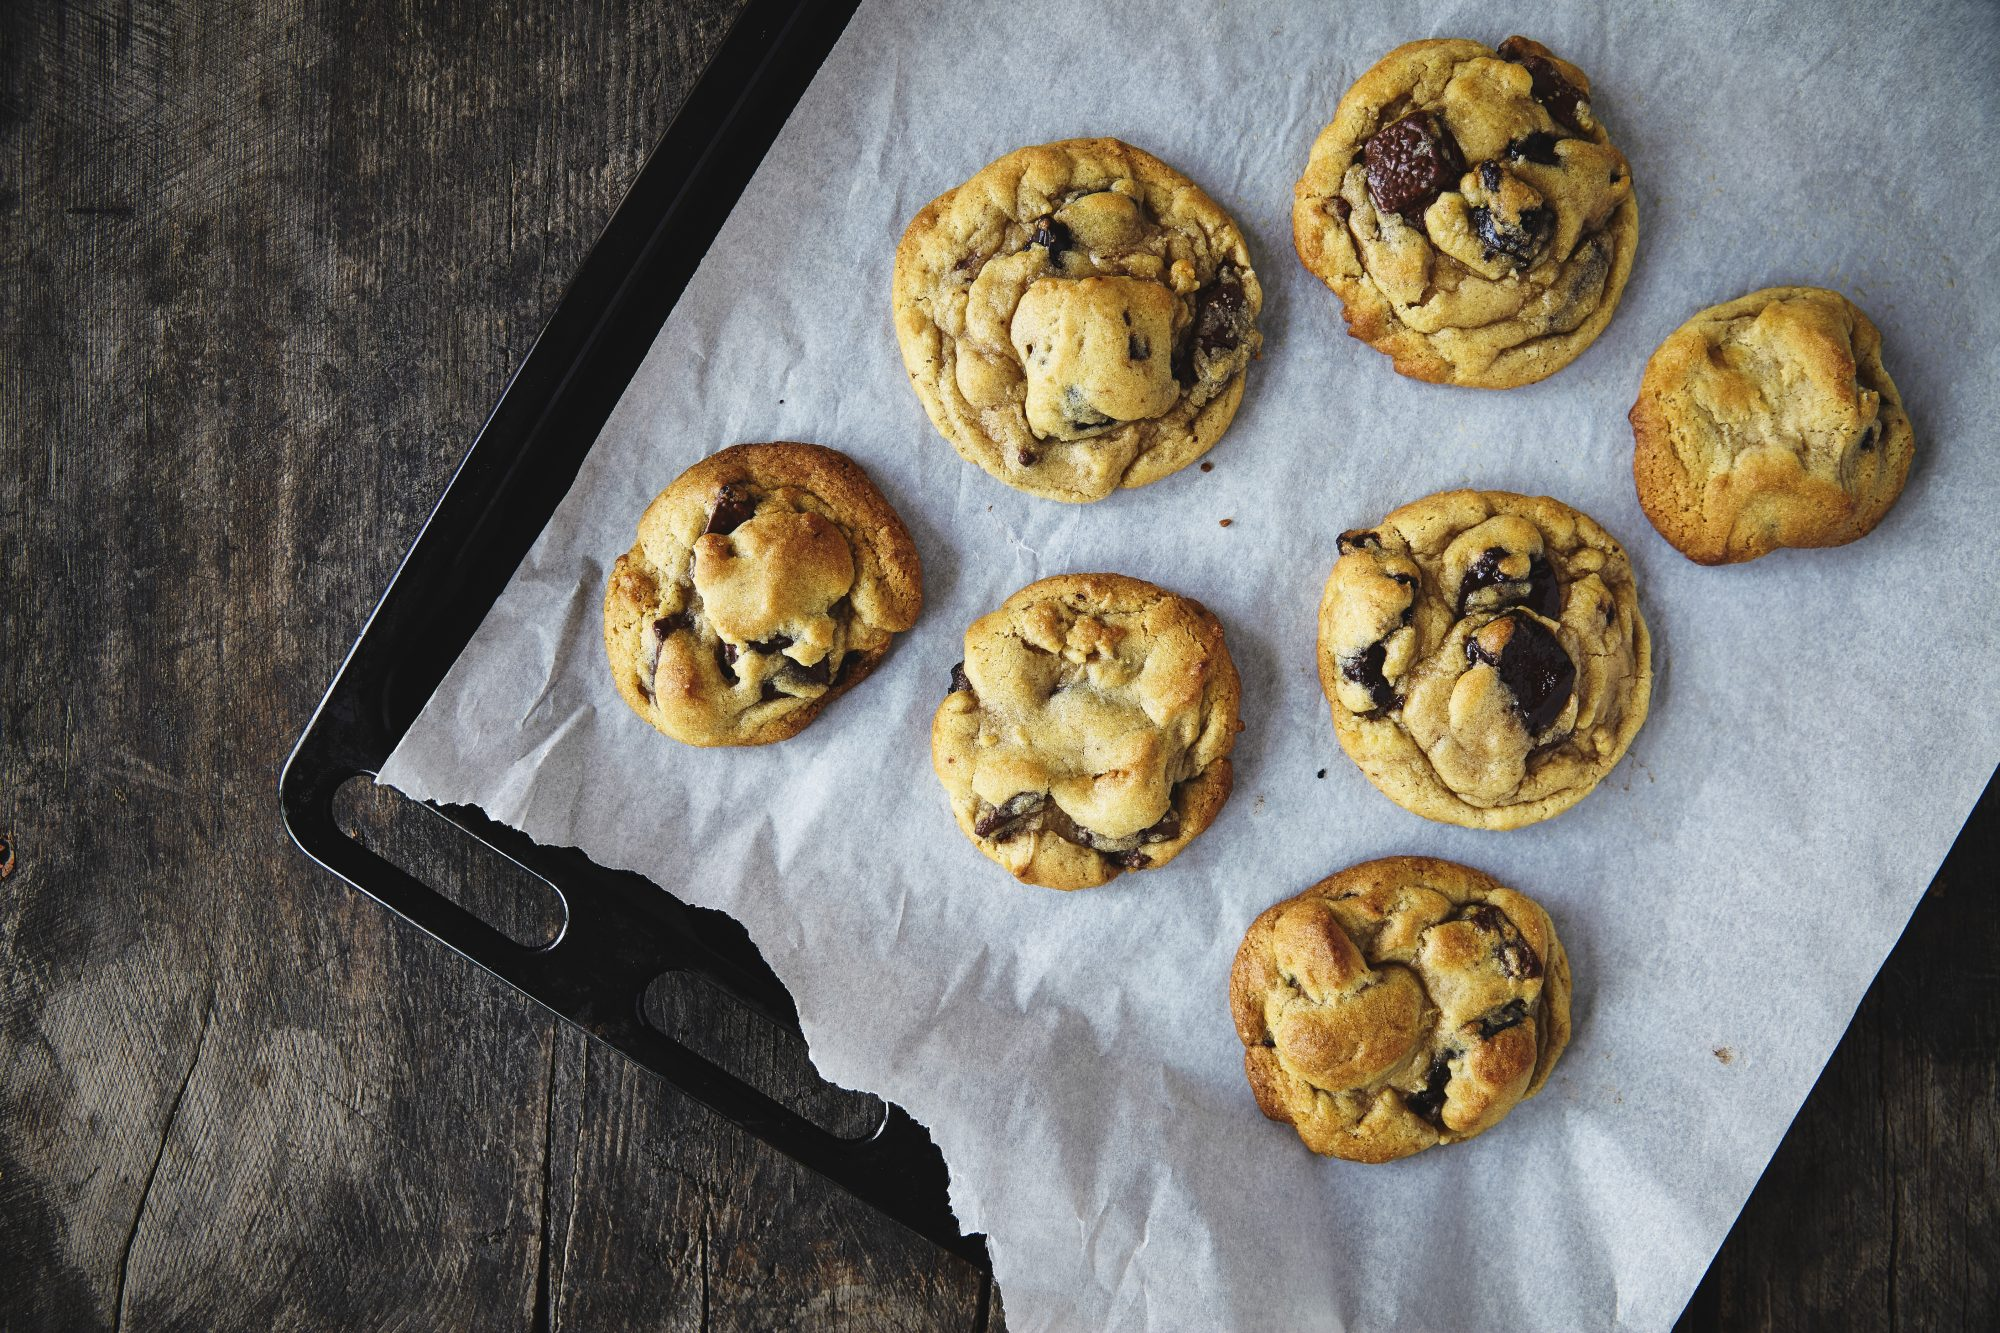 Chocolate chip cookies Getty 9/30/20